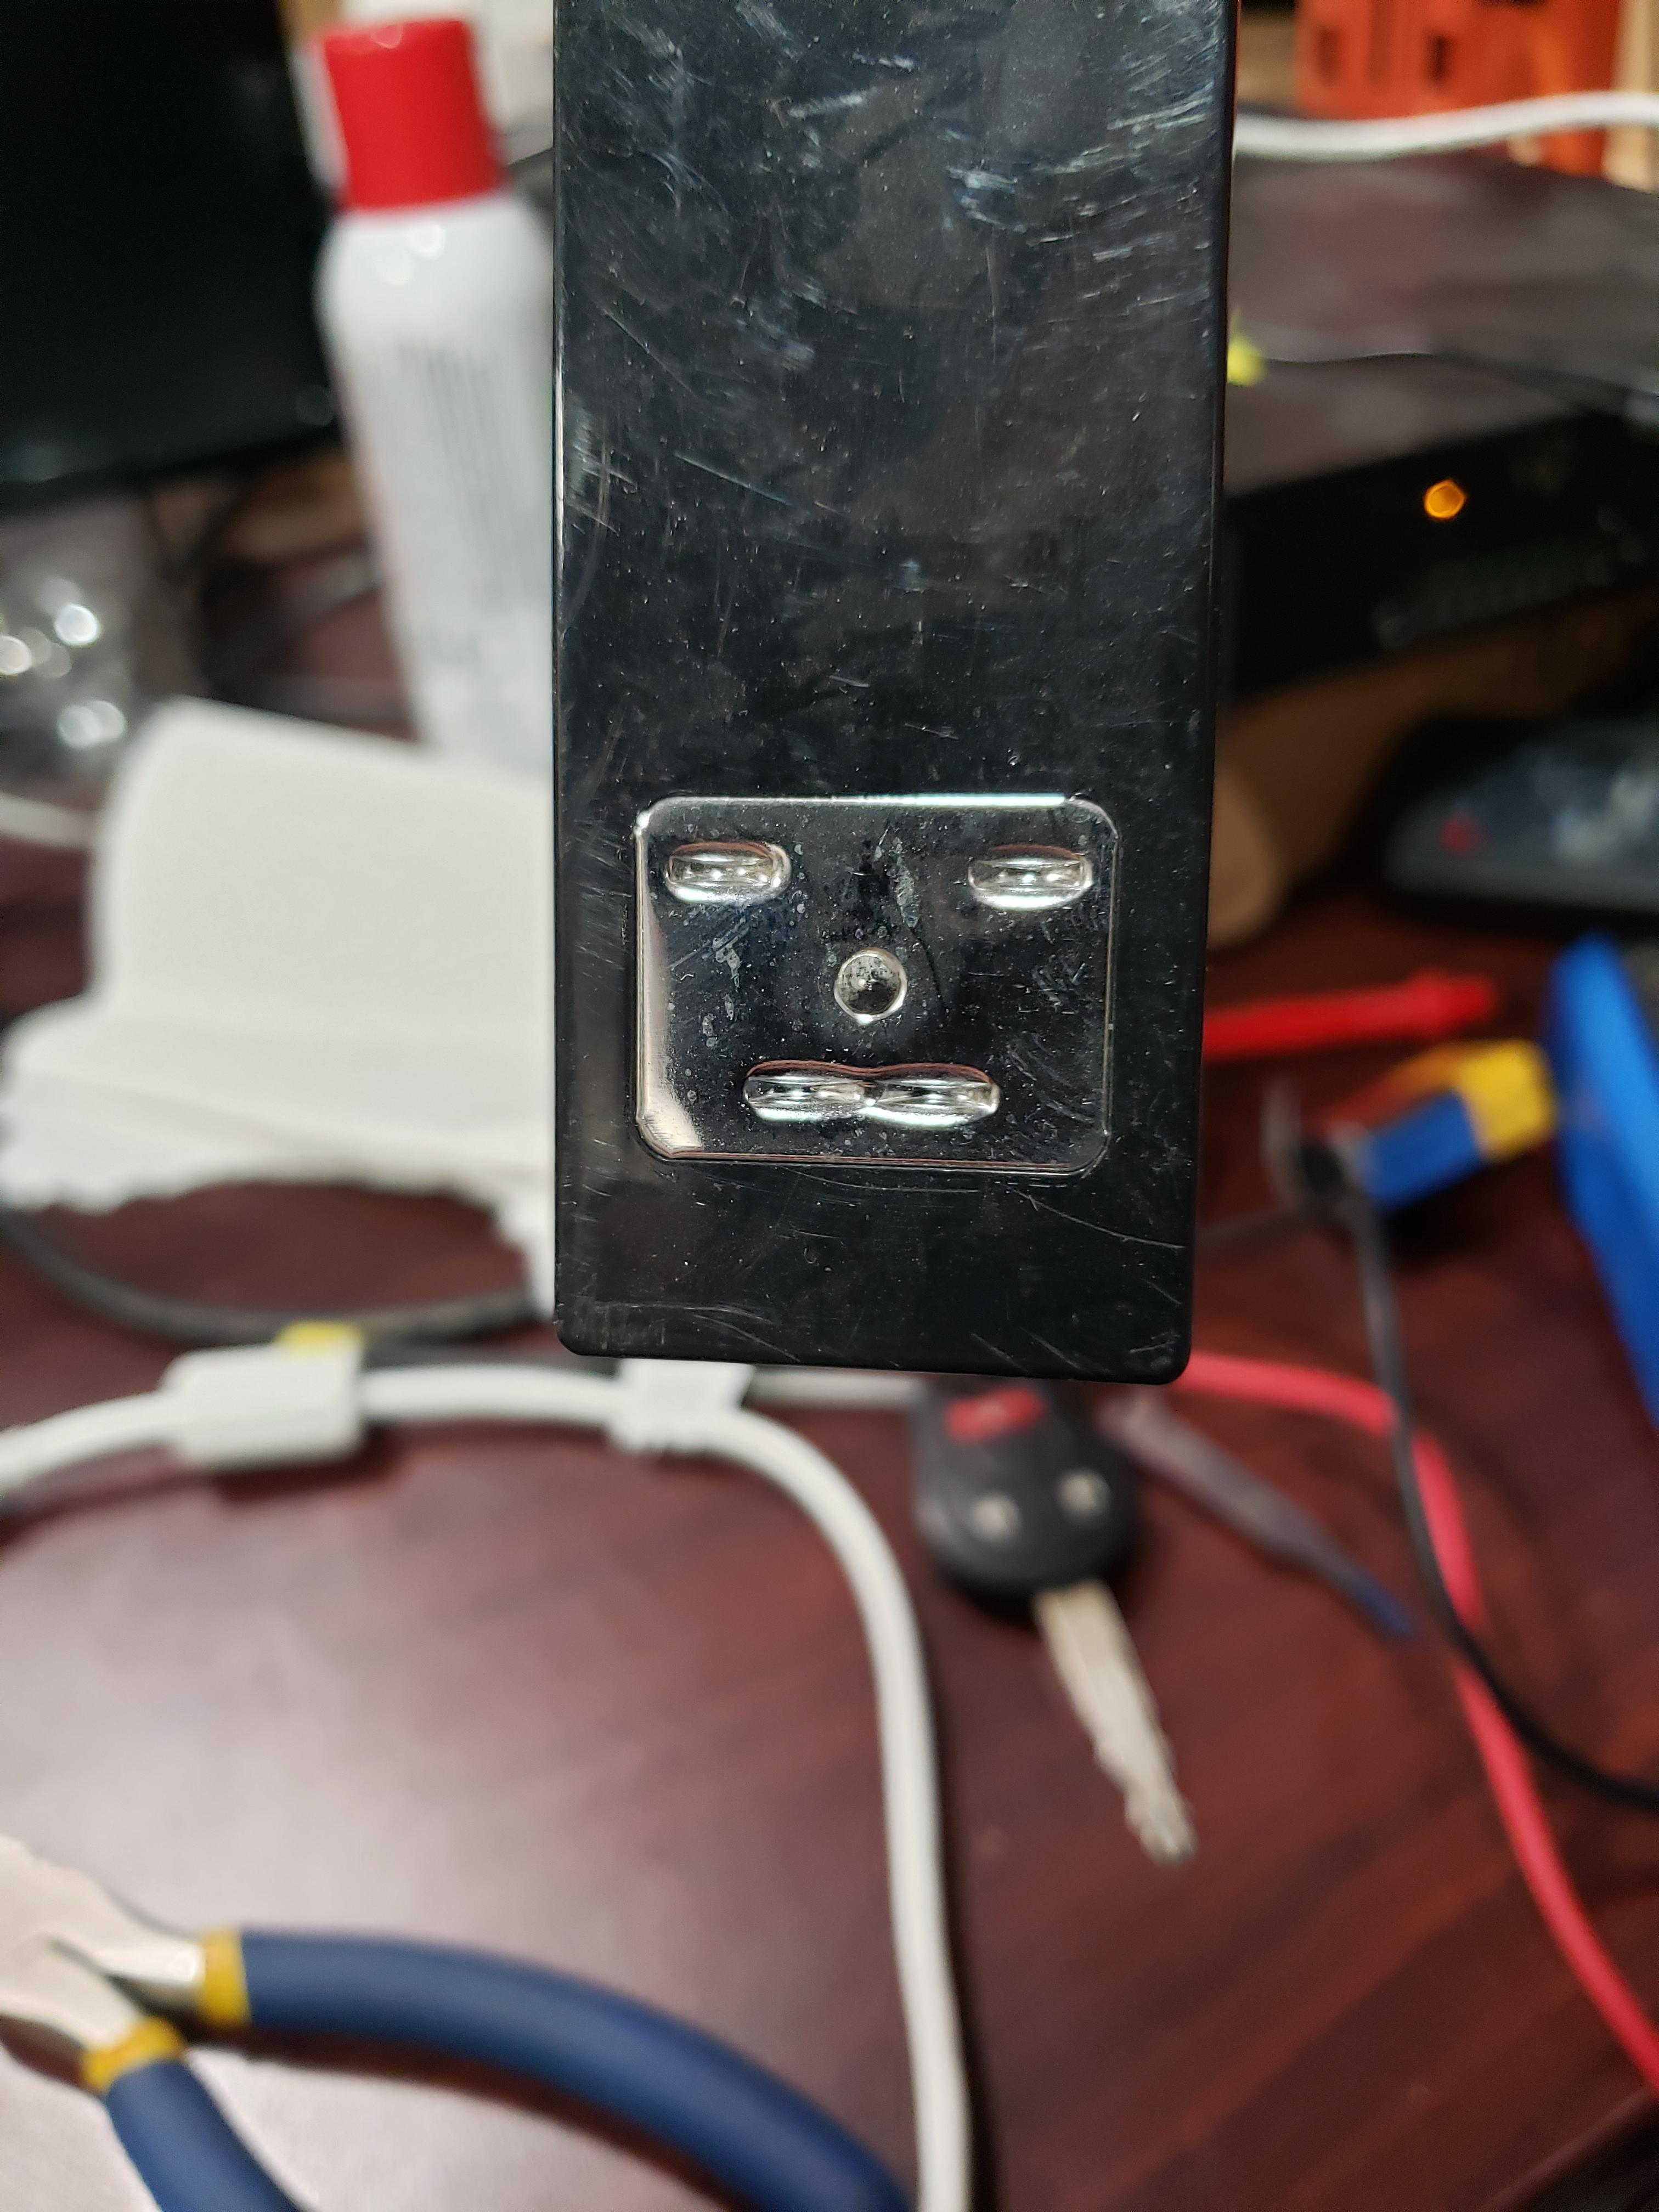 This stapler and his tears of frustration | /r/Pareidolia ... on